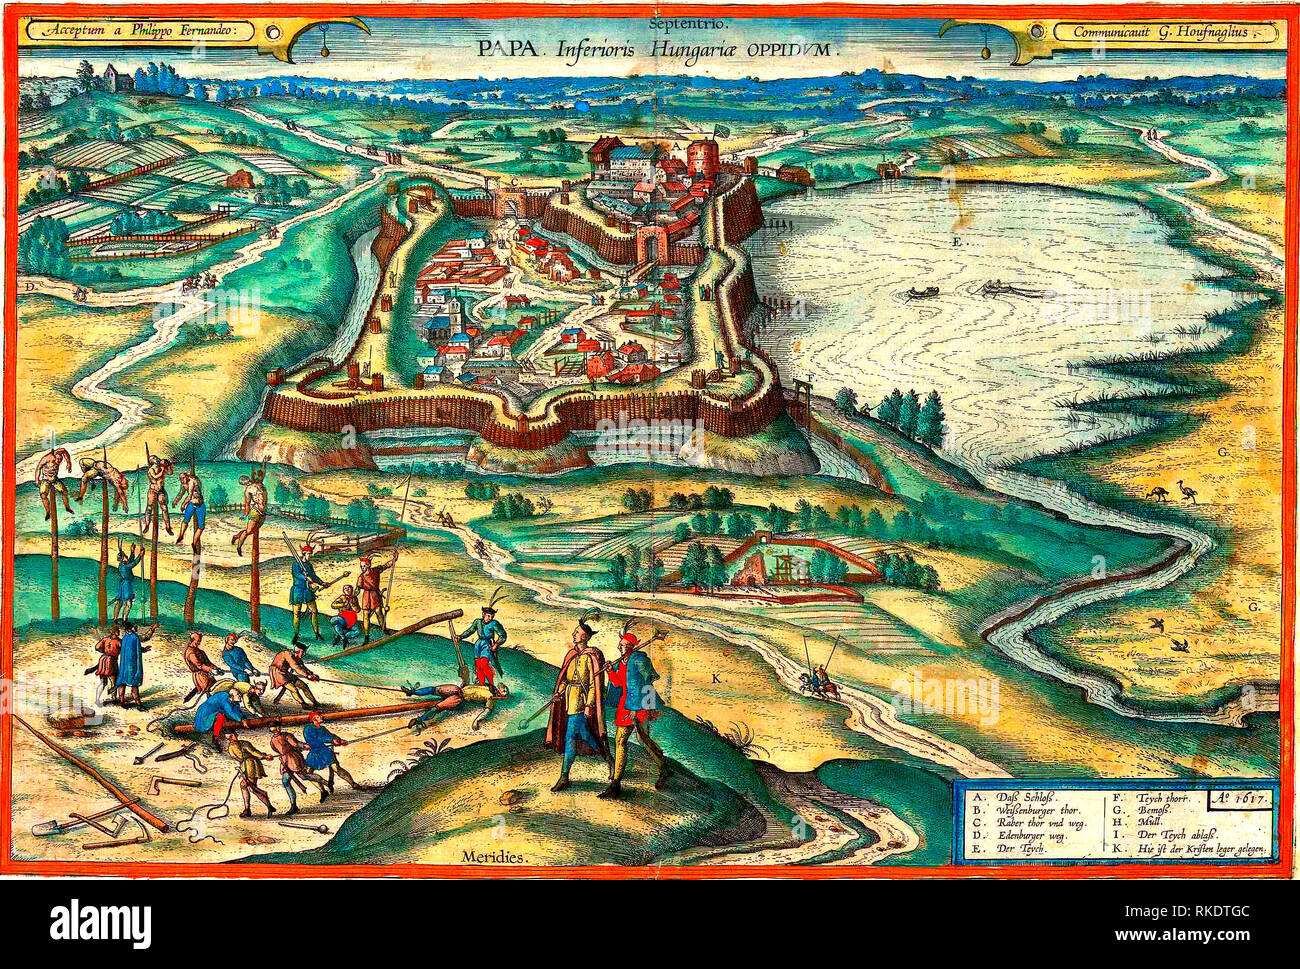 Engraving of the Pápa castle by Georgius Houfnaglius from 1617, in the foreground probably depicting the execution of the mutinous Walloon mercenaries in 1600 - Stock Image